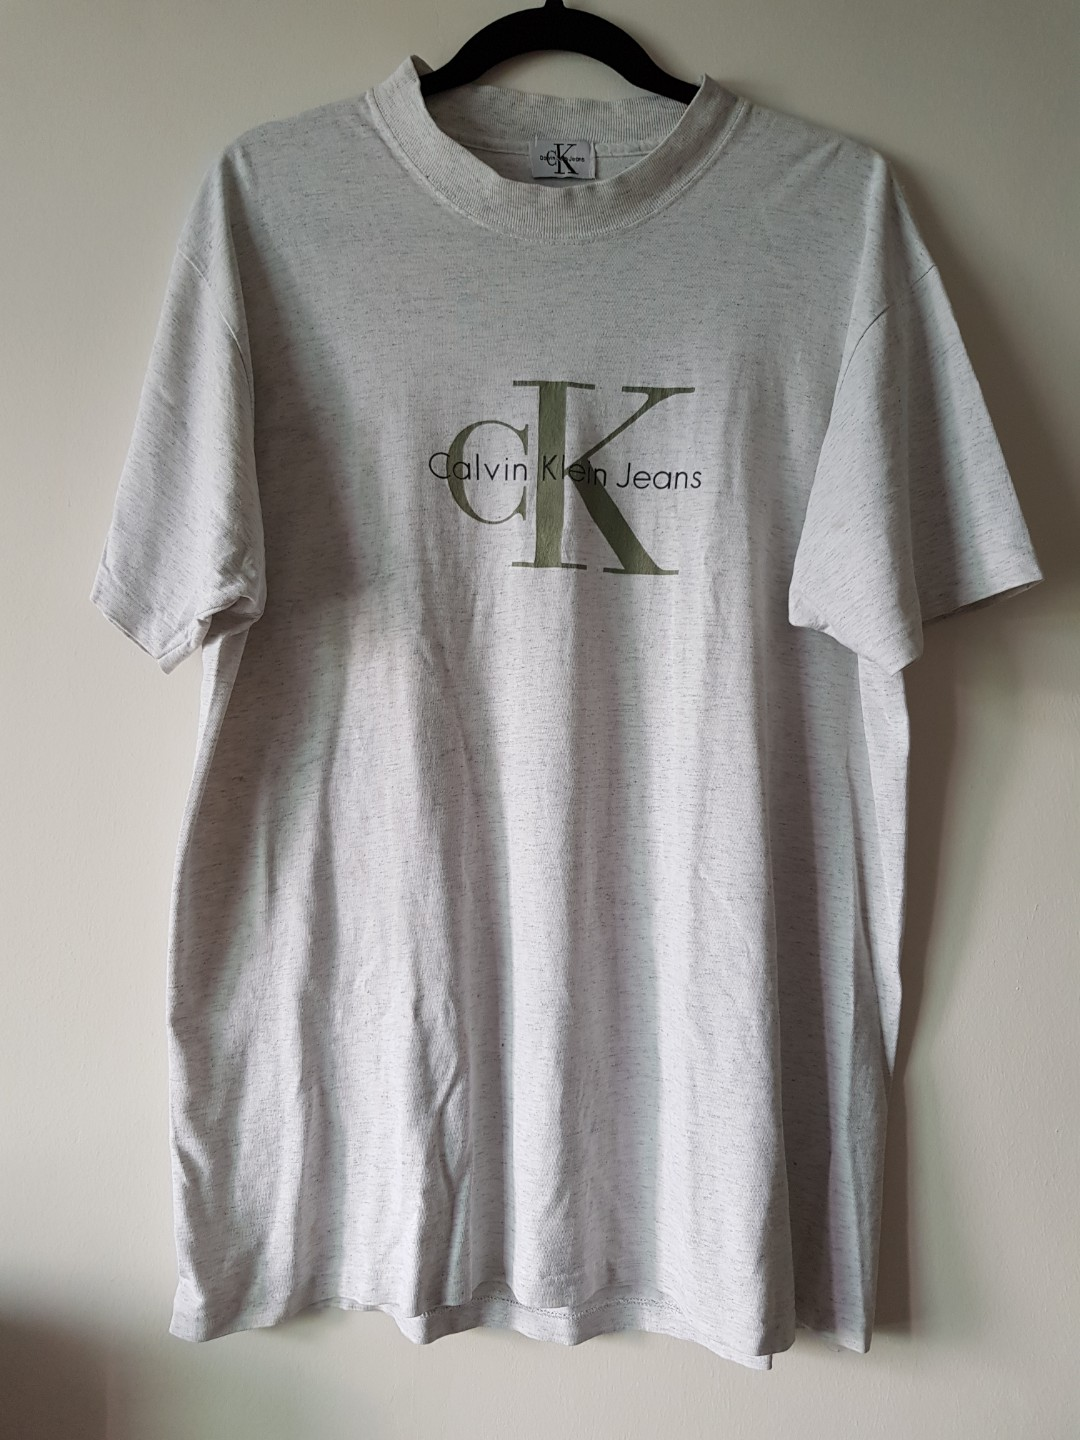 f56411a1cd42 Vintage Calvin Klein Tee, Men's Fashion, Clothes, Tops on Carousell